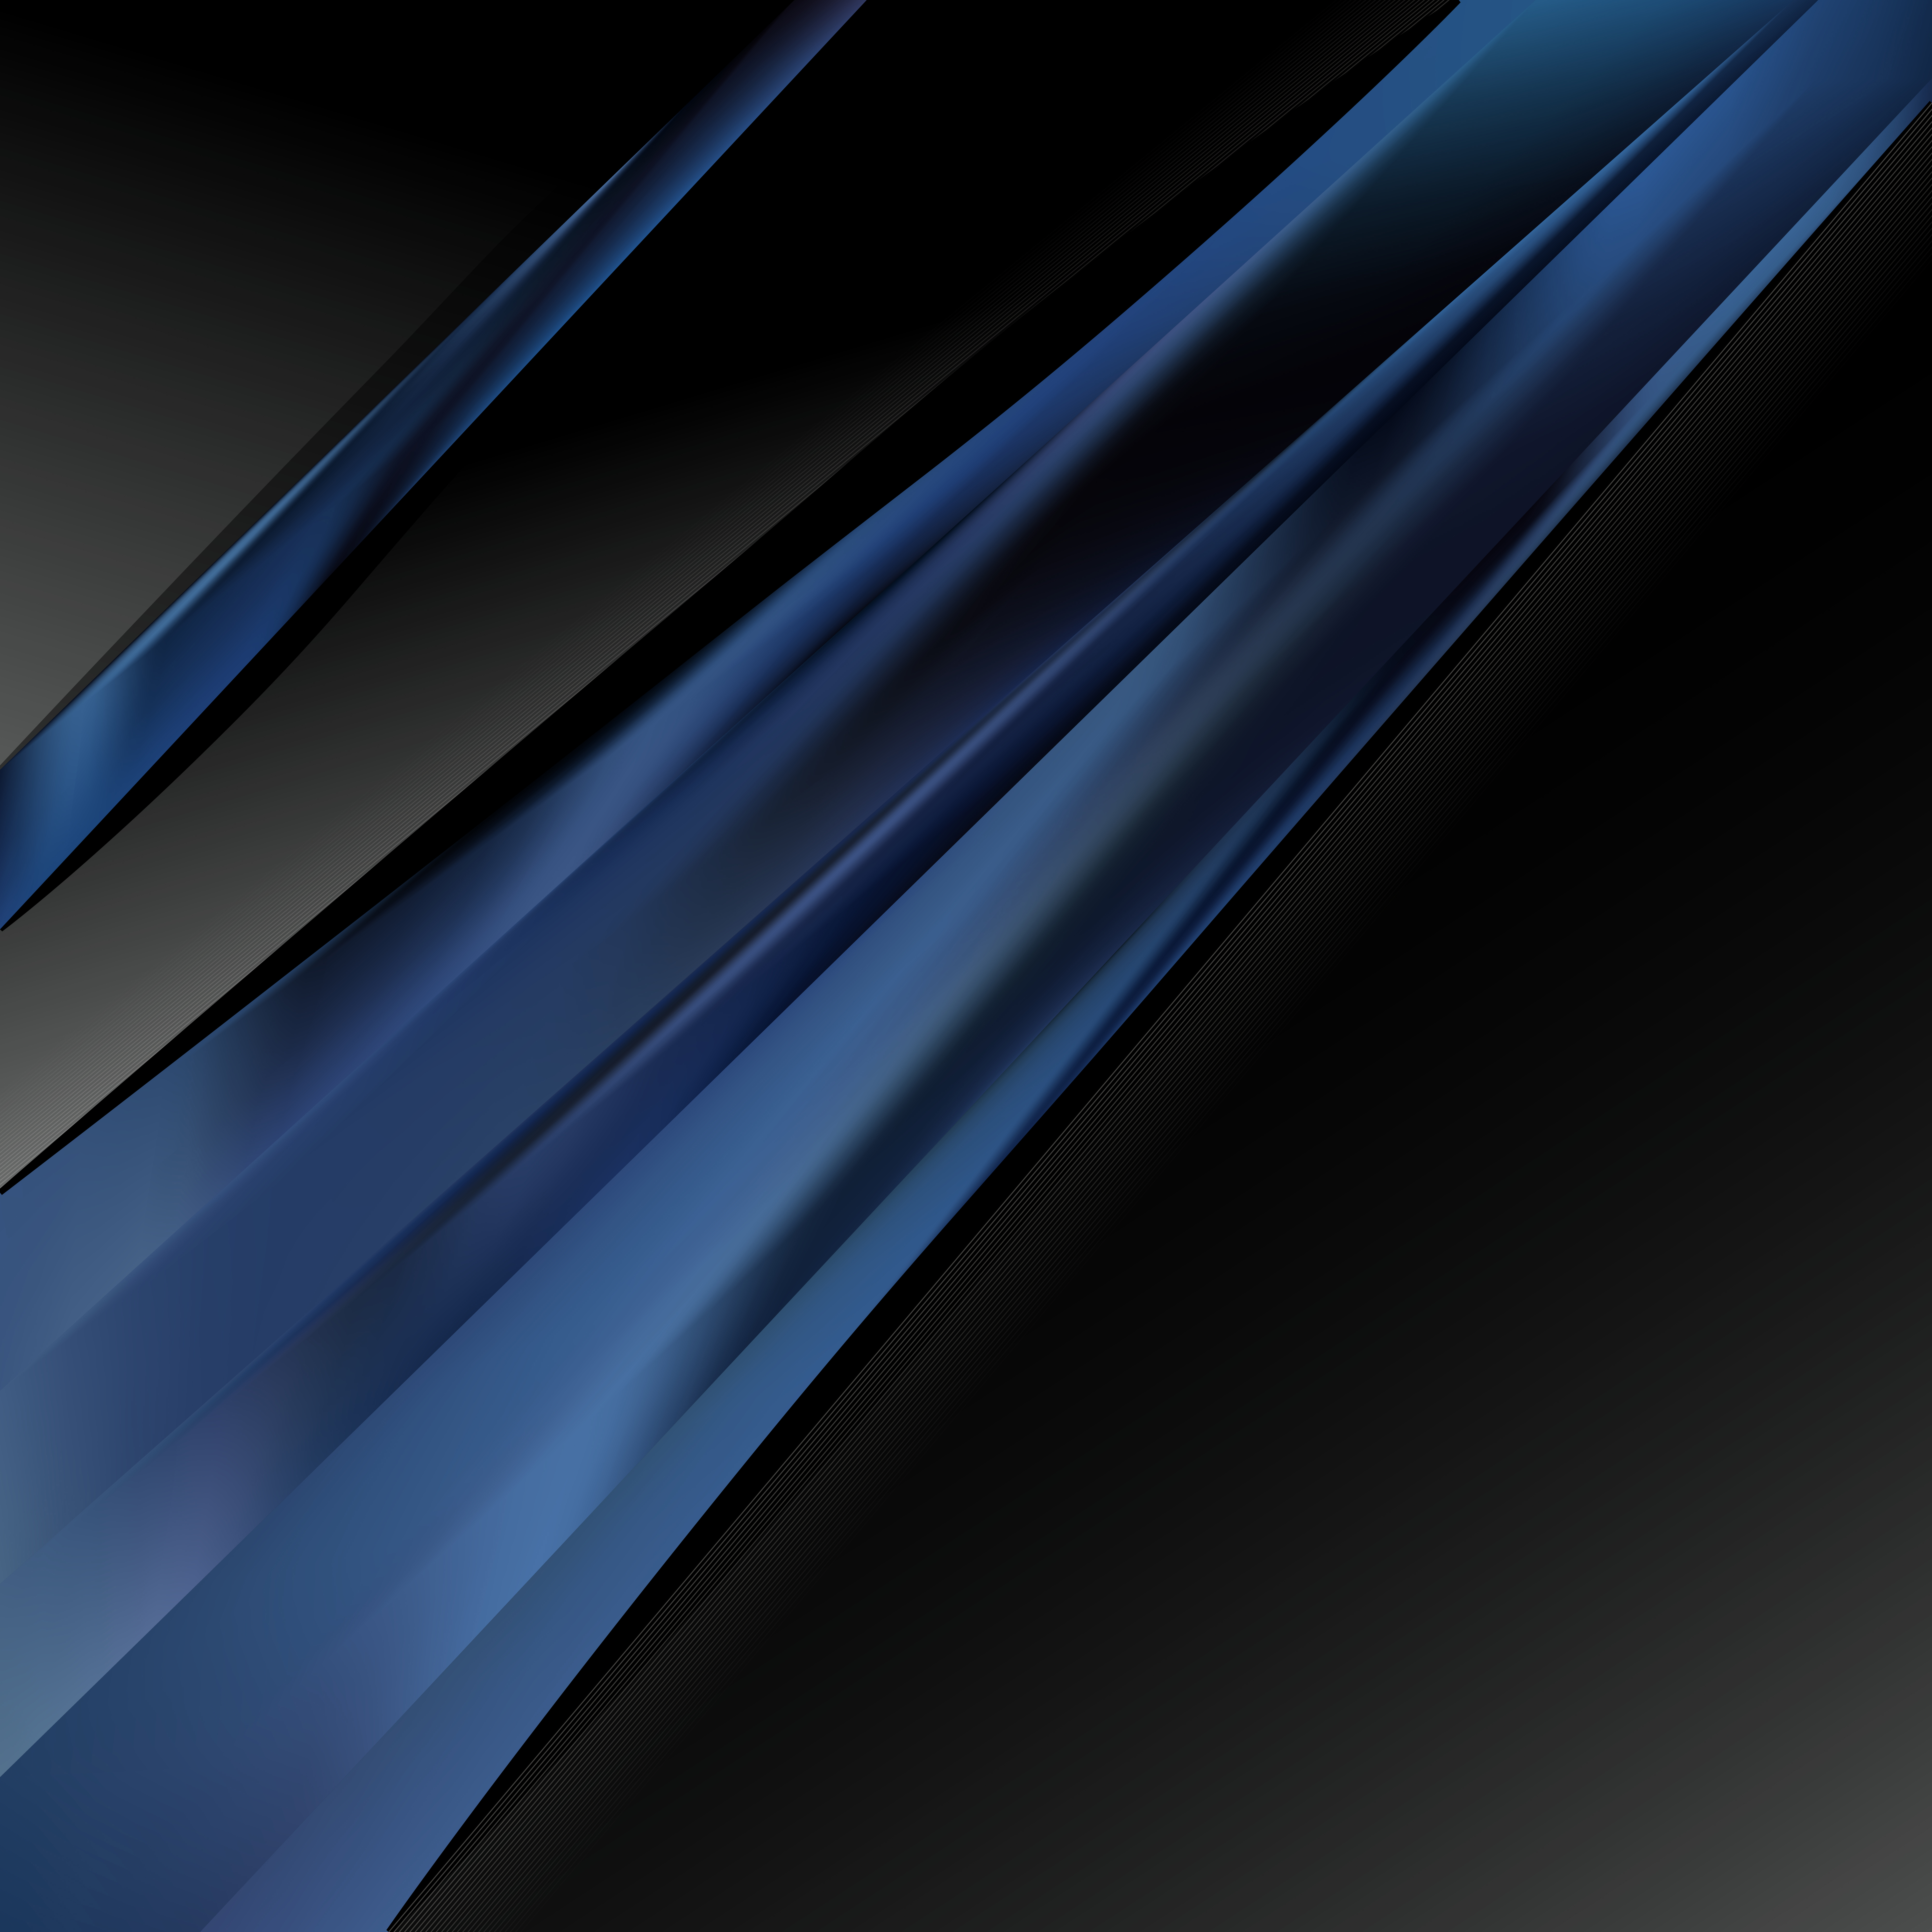 Black and Blue Business Background